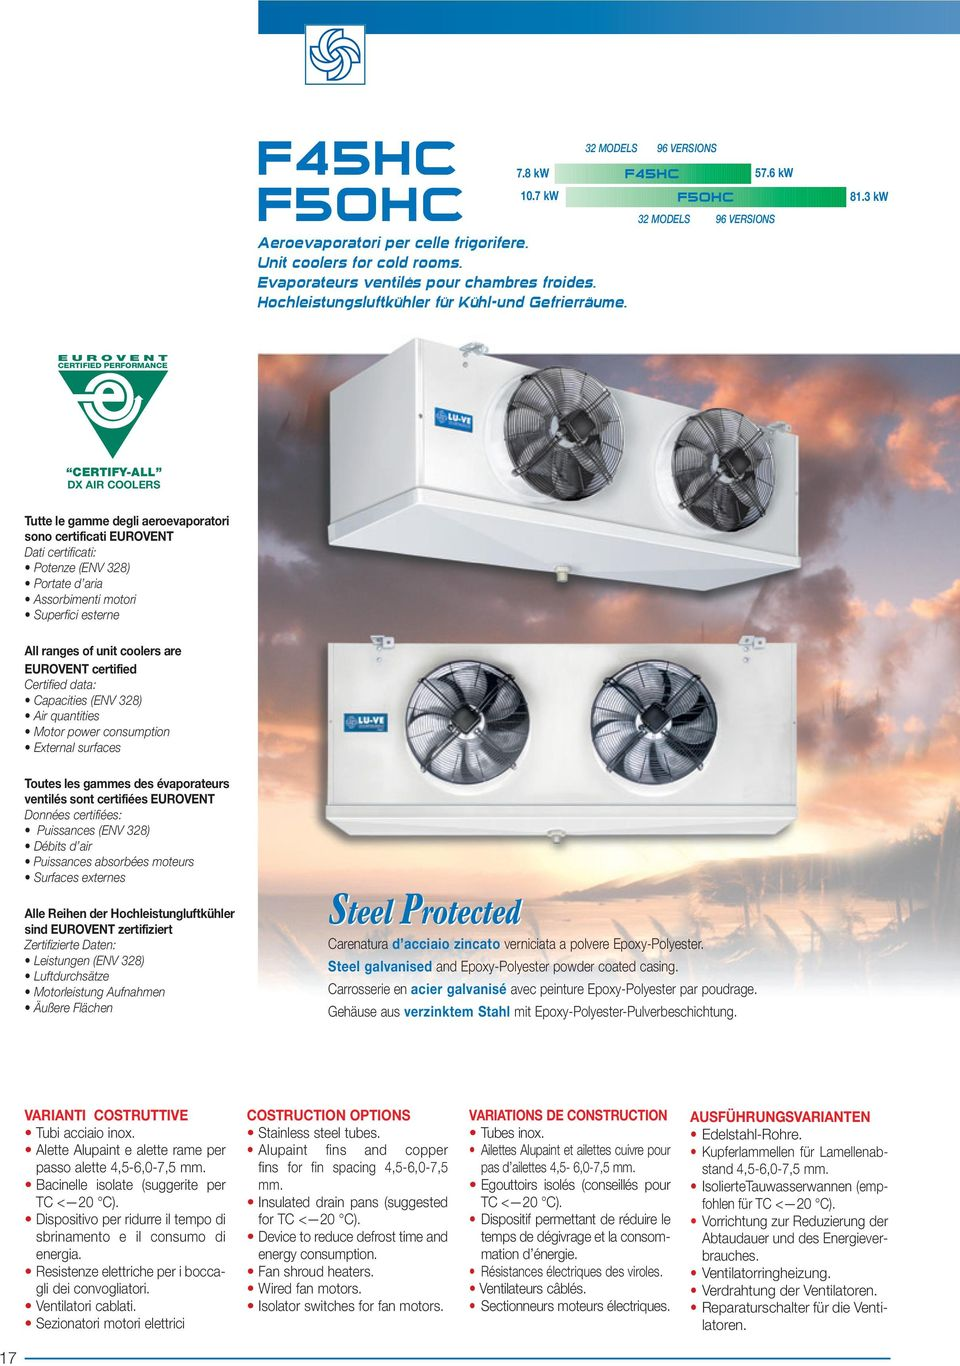 3 kw 32 MODELS 96 VERSIONS 32 MODELS EUROVENT CERTIFIED PERFORMANCE CERTIFY-ALL DX AIR COOLERS Tutte le gamme degli aeroevaporatori sono certificati EUROVENT Dati certificati: Potenze (ENV 328)